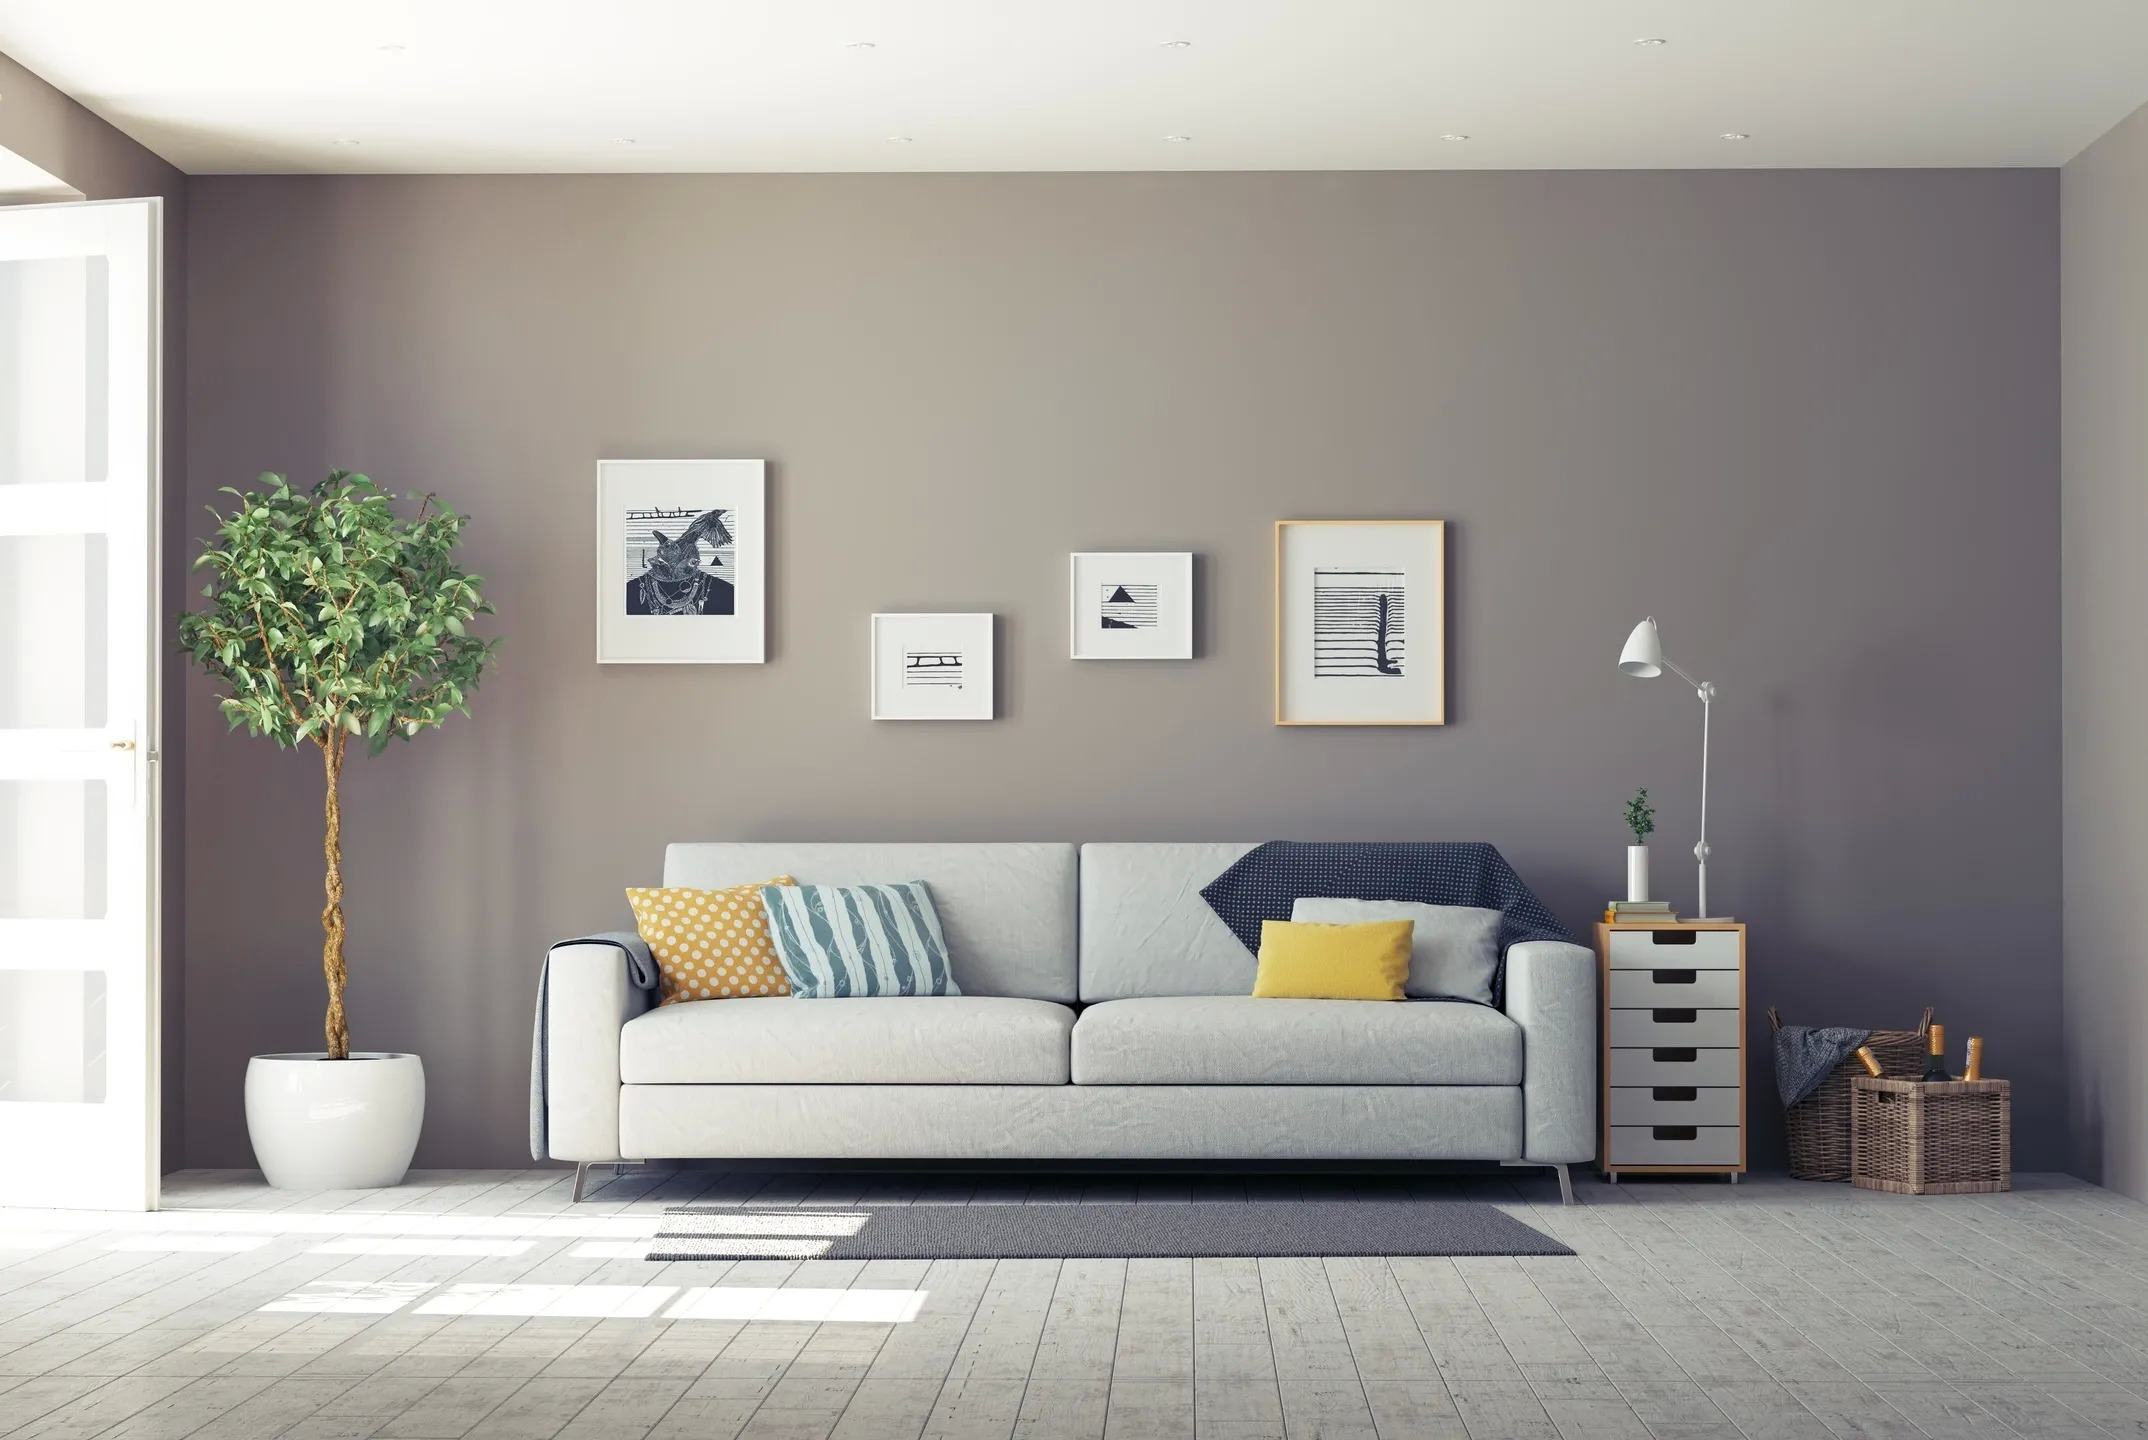 Residential-Interior-Painting-All-Los-Angeles-Painting-Company_-Inc.